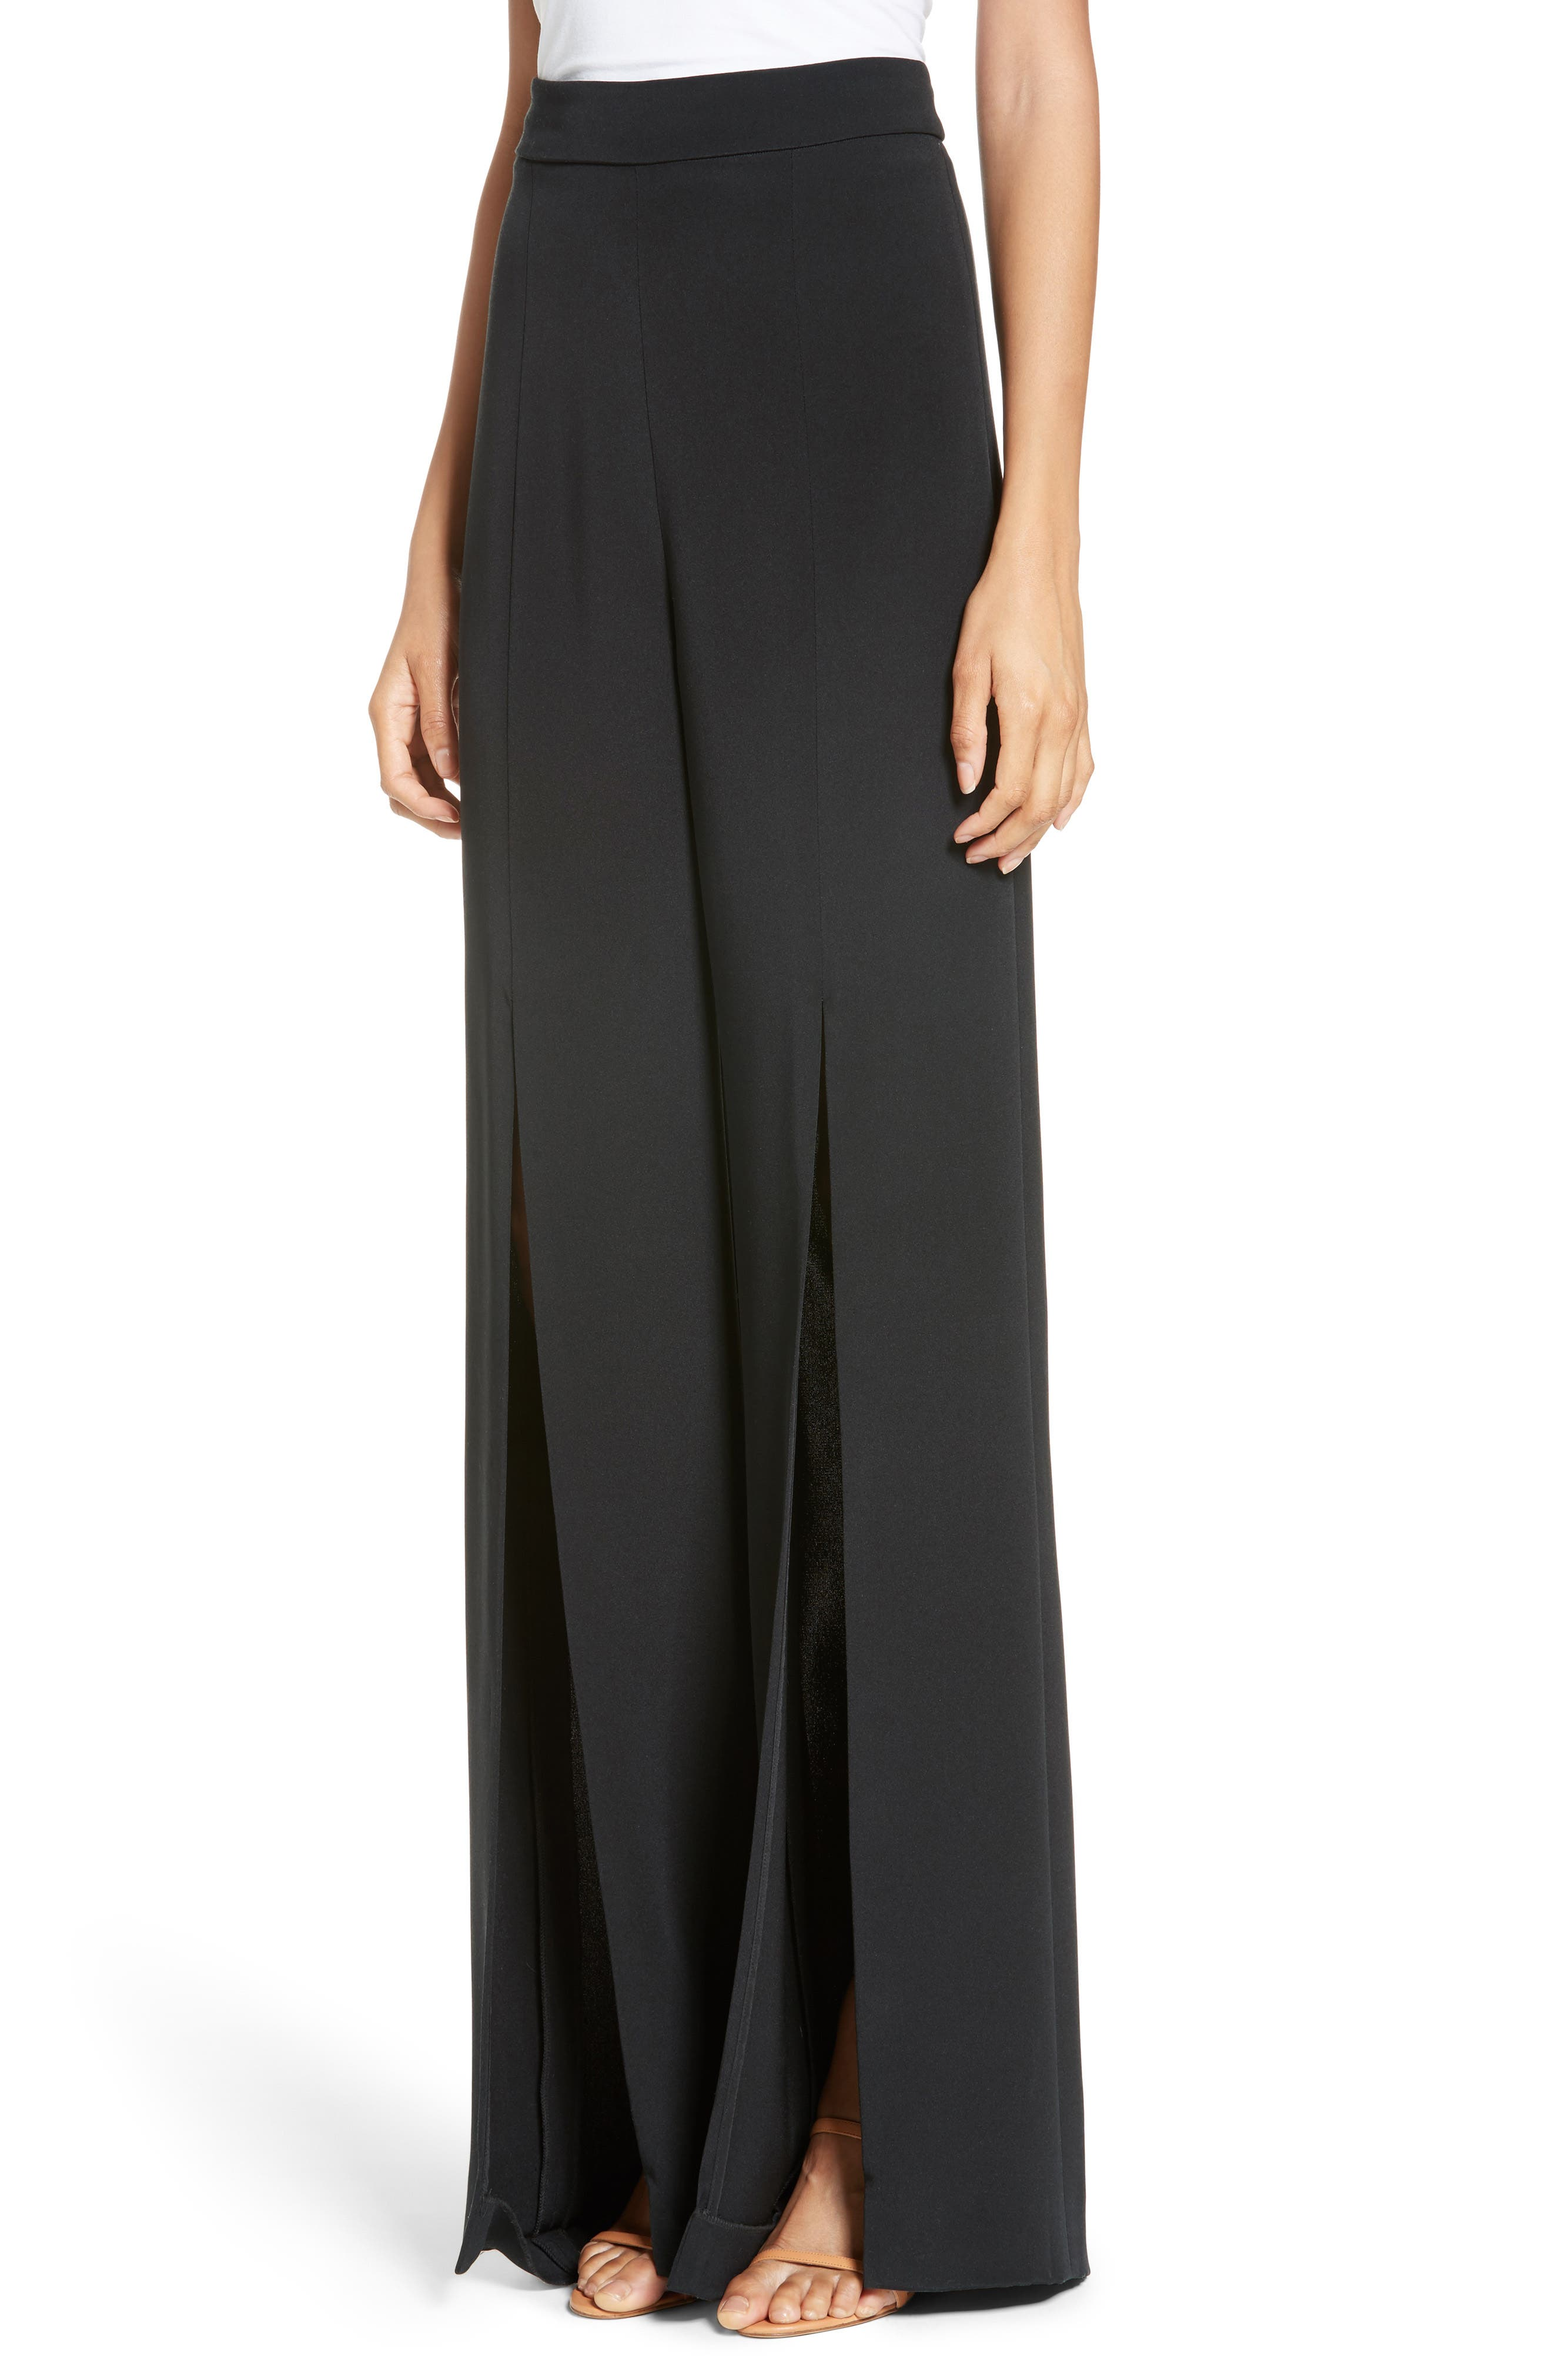 Slit Silk High Waisted Pants,                             Alternate thumbnail 5, color,                             Black